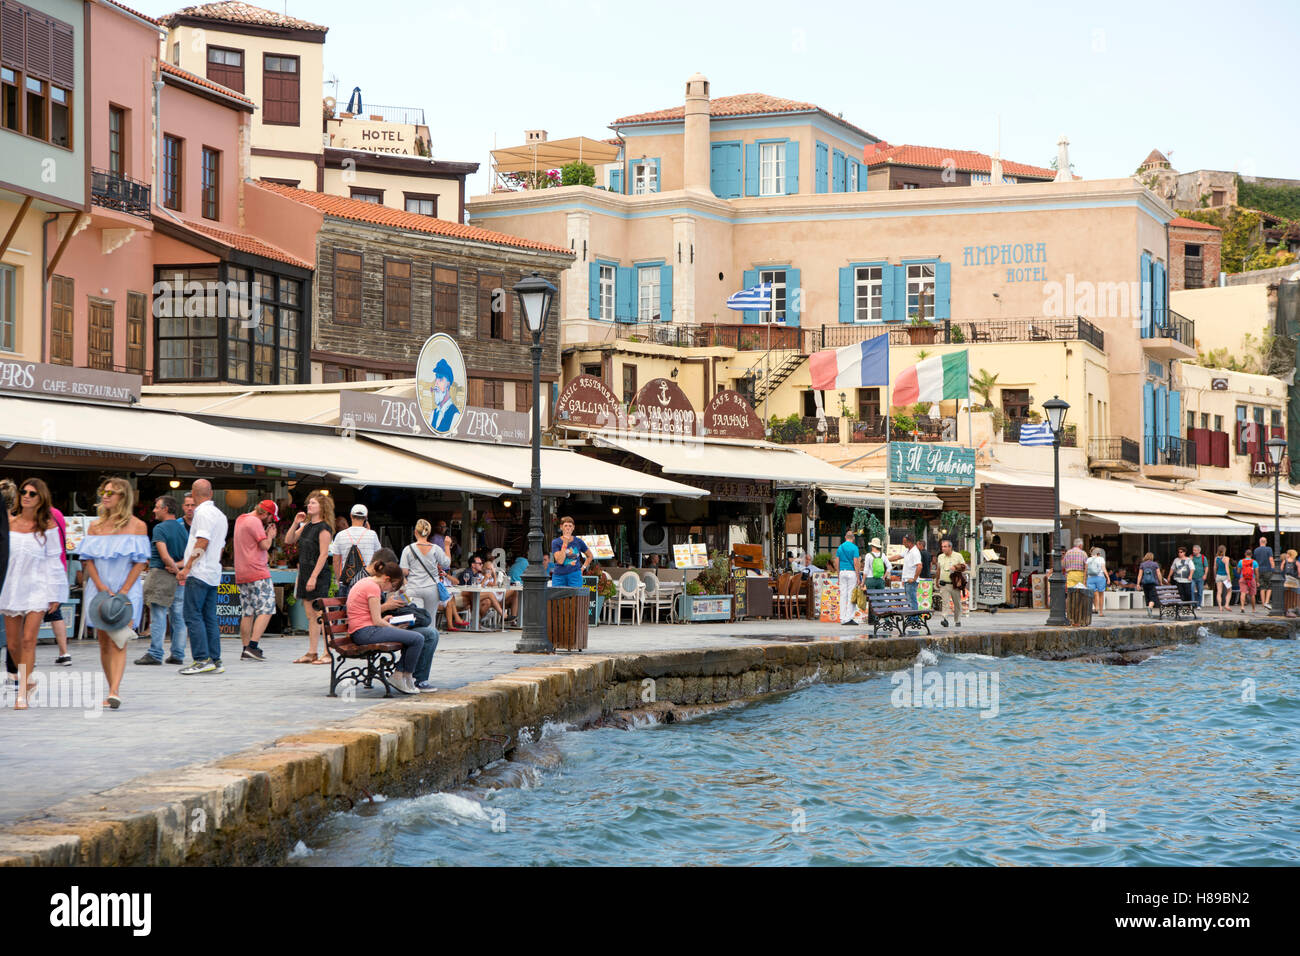 Greece, Crete, Chania, Venetian Port, Promenade to the western end of the harbour - Stock Image